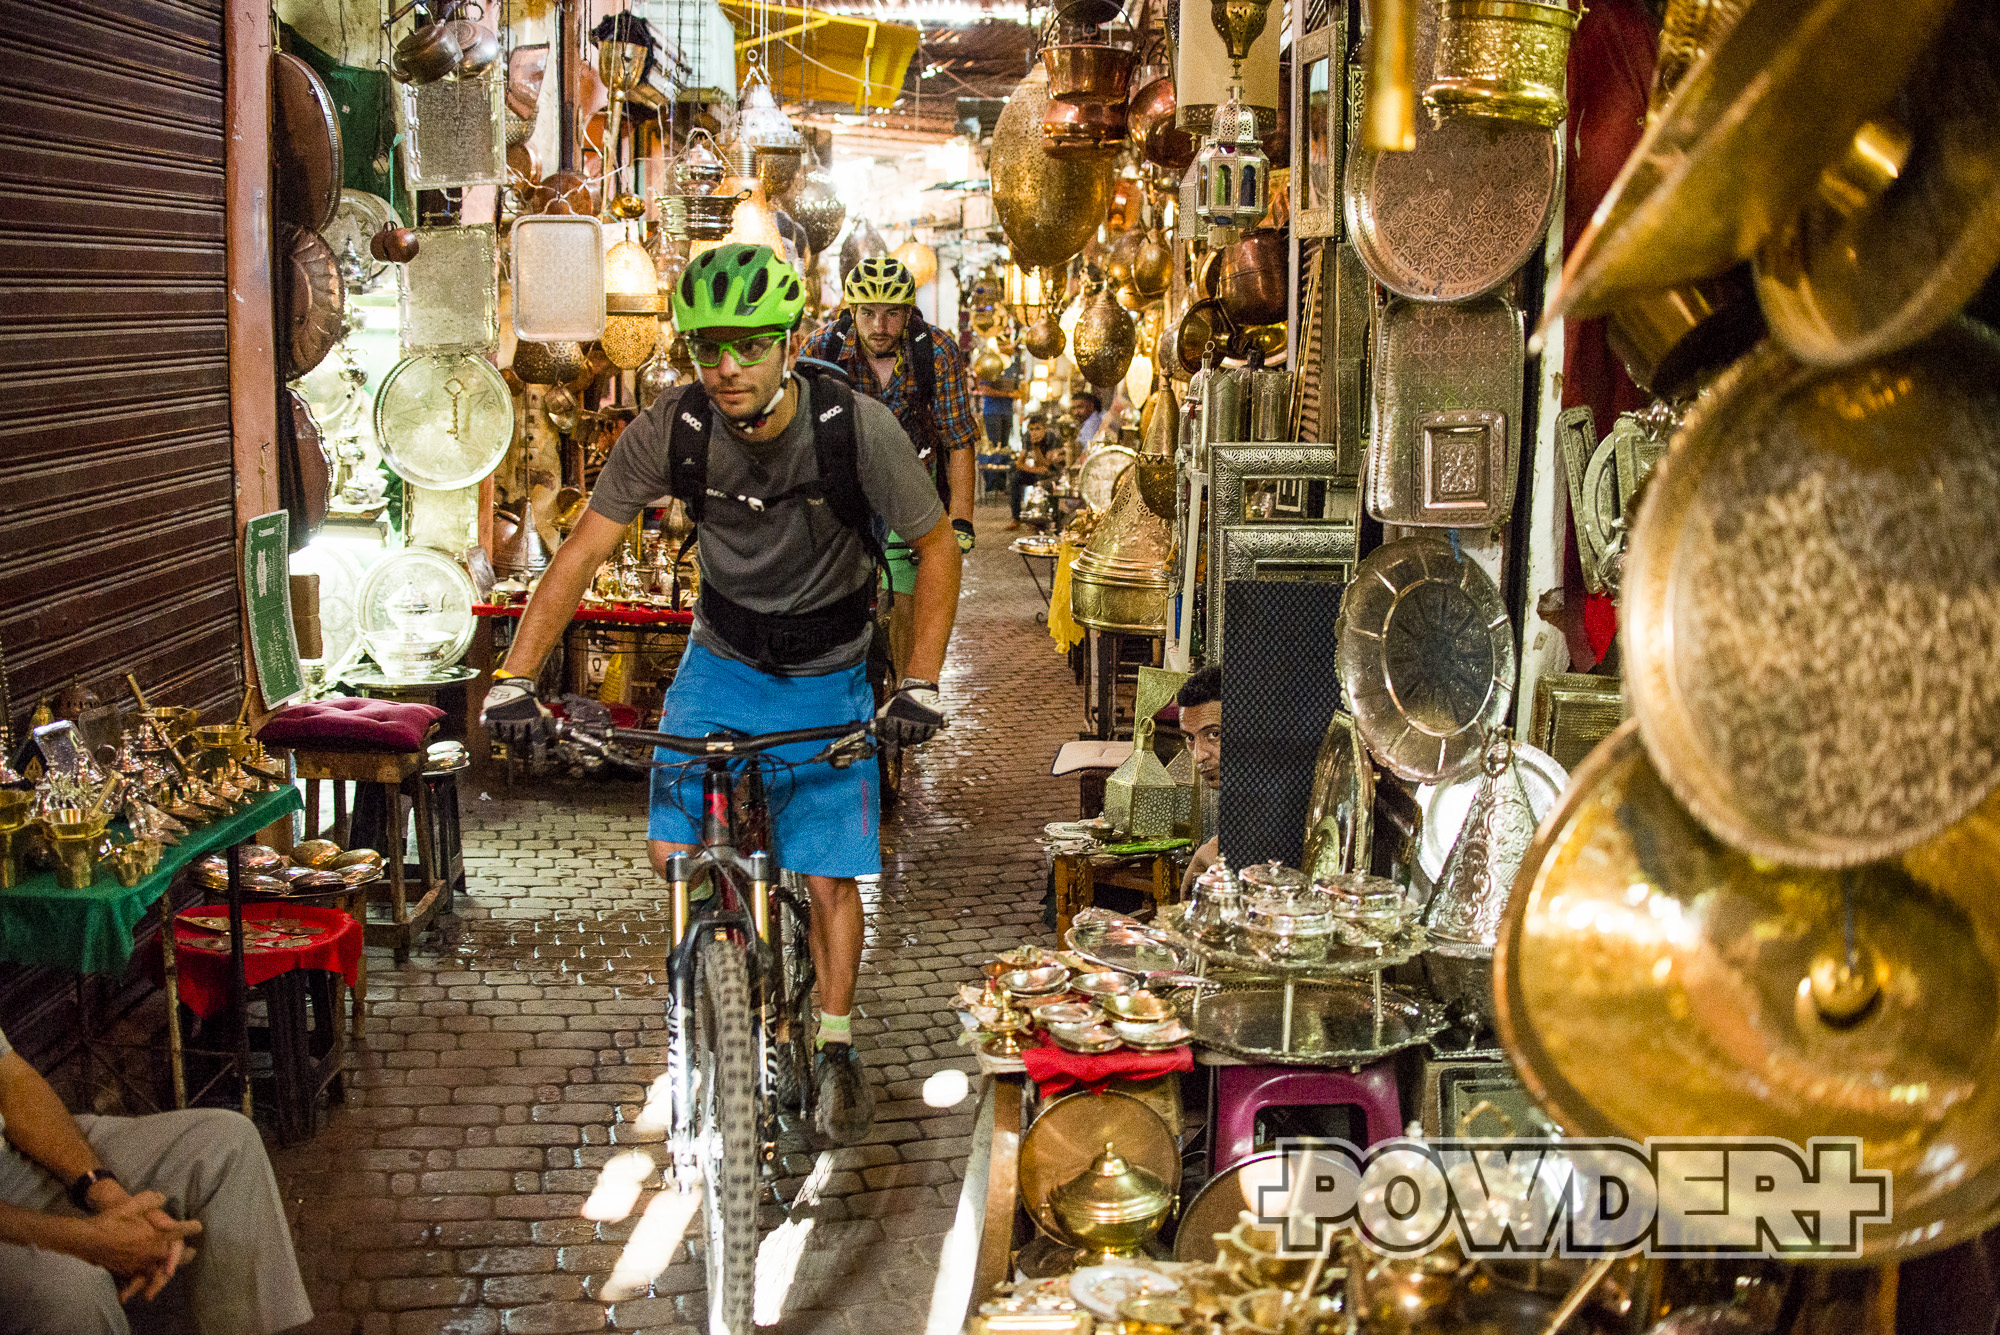 Bike, Mountainbike, Enduro, Marokko, Toubkal, Atlas, bike atlas, bike toubkal, biken, Bike Tour, Atlasumrundung, morocco, Radon, Marmot, 5.ten, evoc, imlil, toubkal-tour, marrakech, essaouira, bike marokko, geführte tour, bergspechte